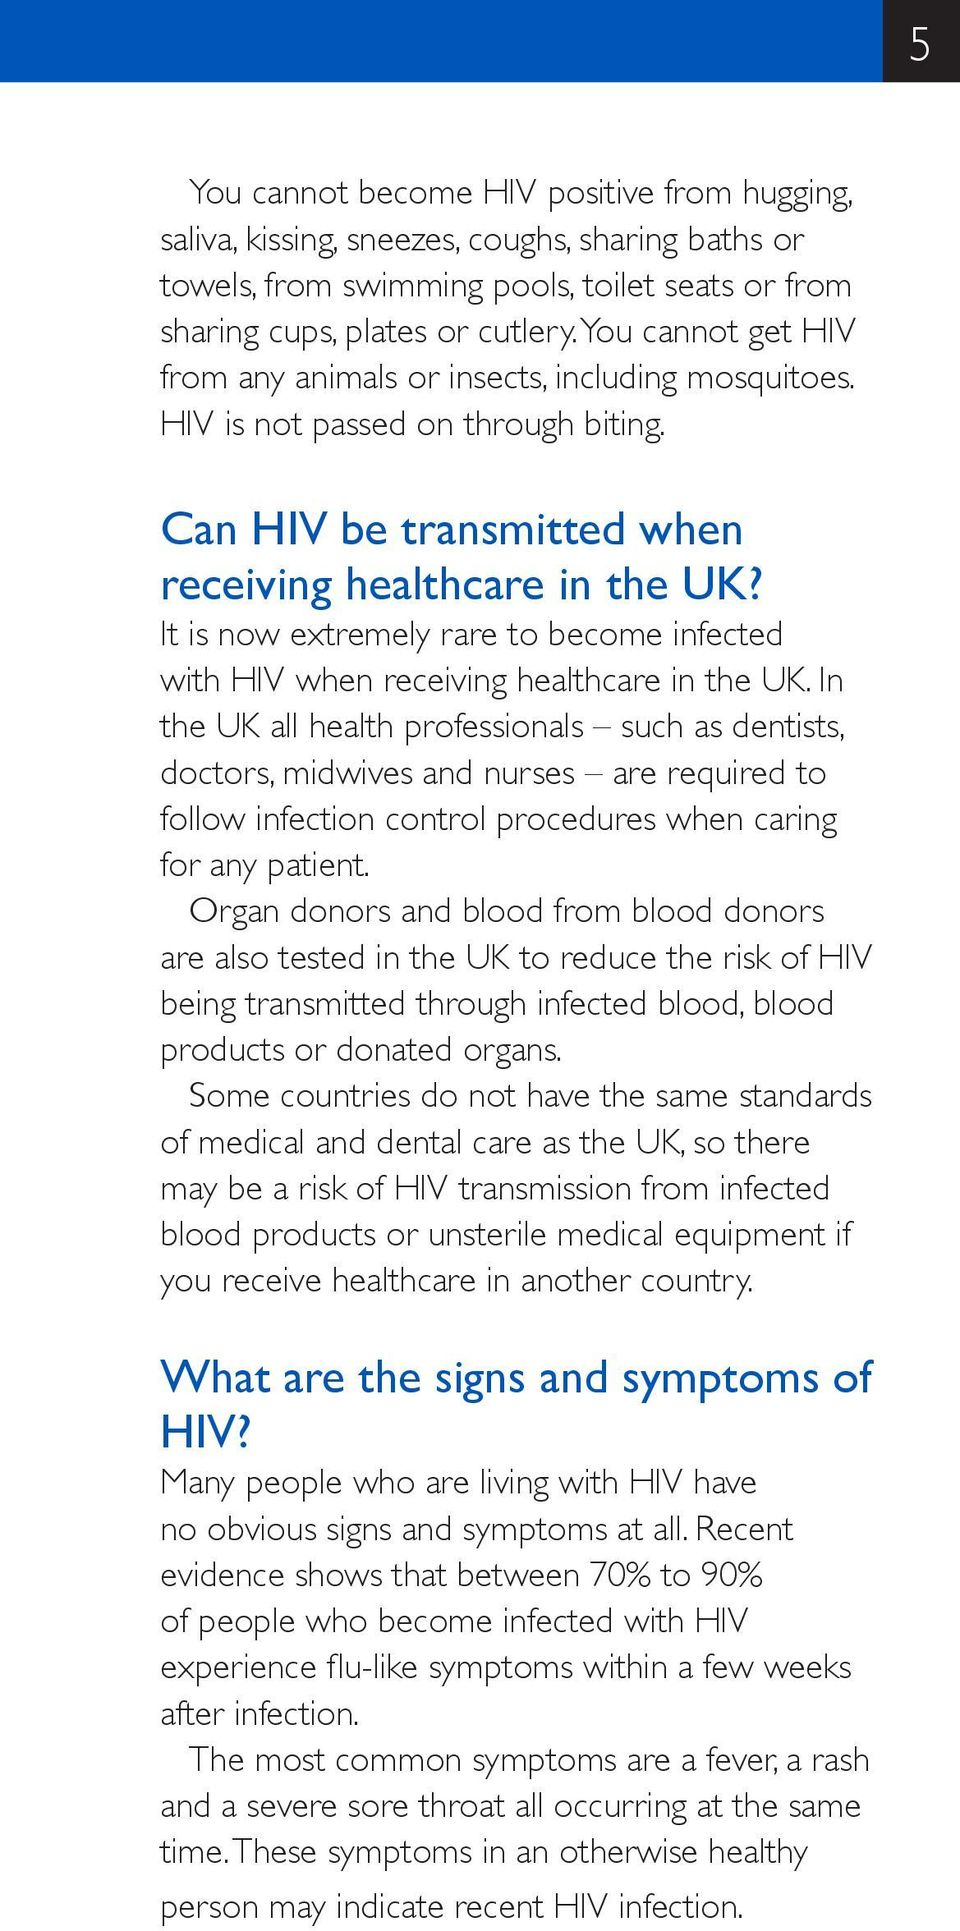 It is now extremely rare to become infected with HIV when receiving healthcare in the UK.